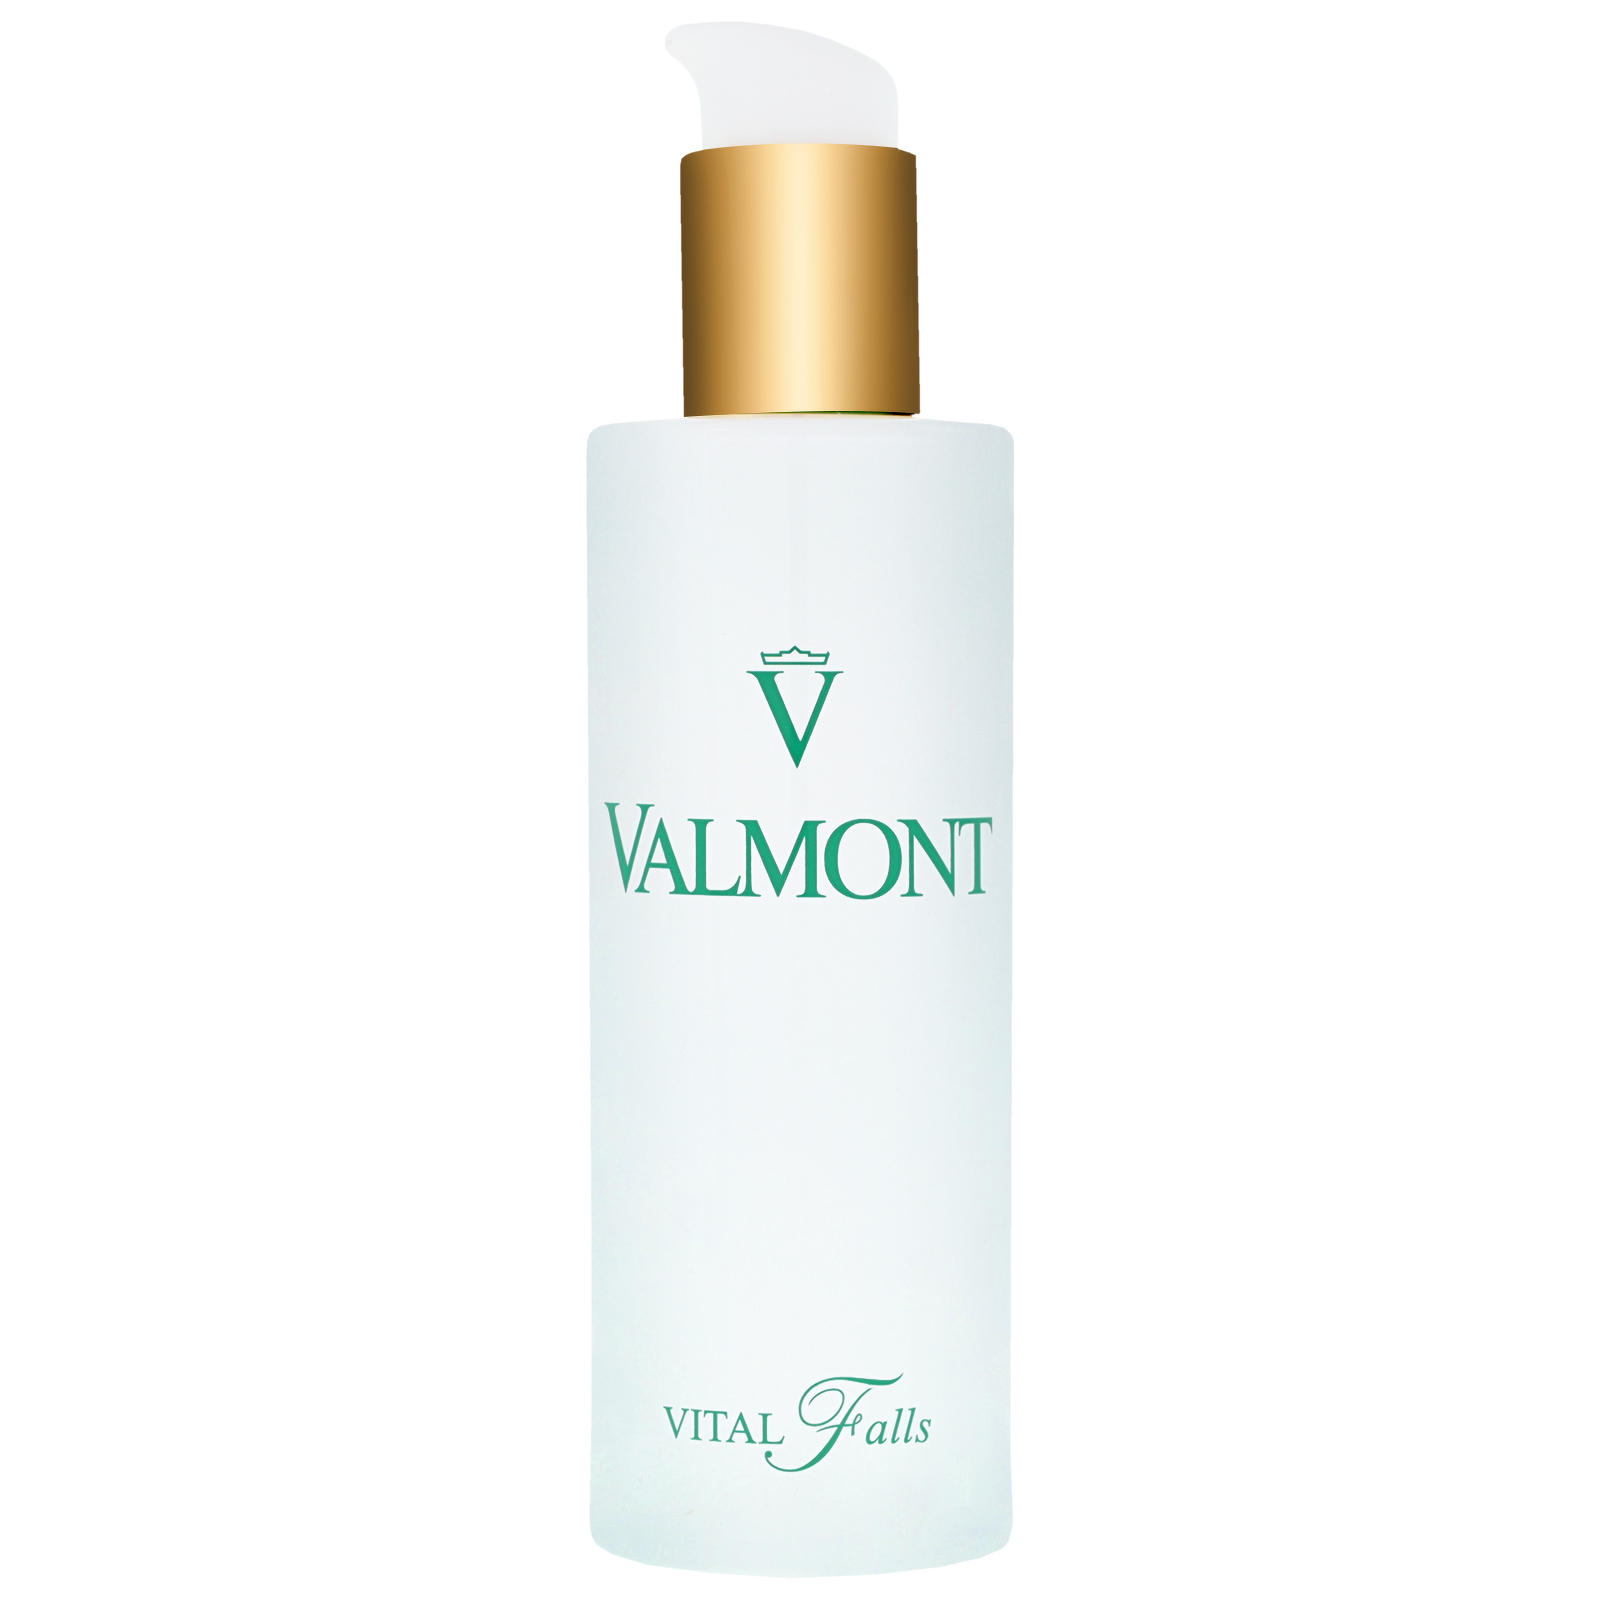 Valmont Spirit of Purity Vital Falls 150ml